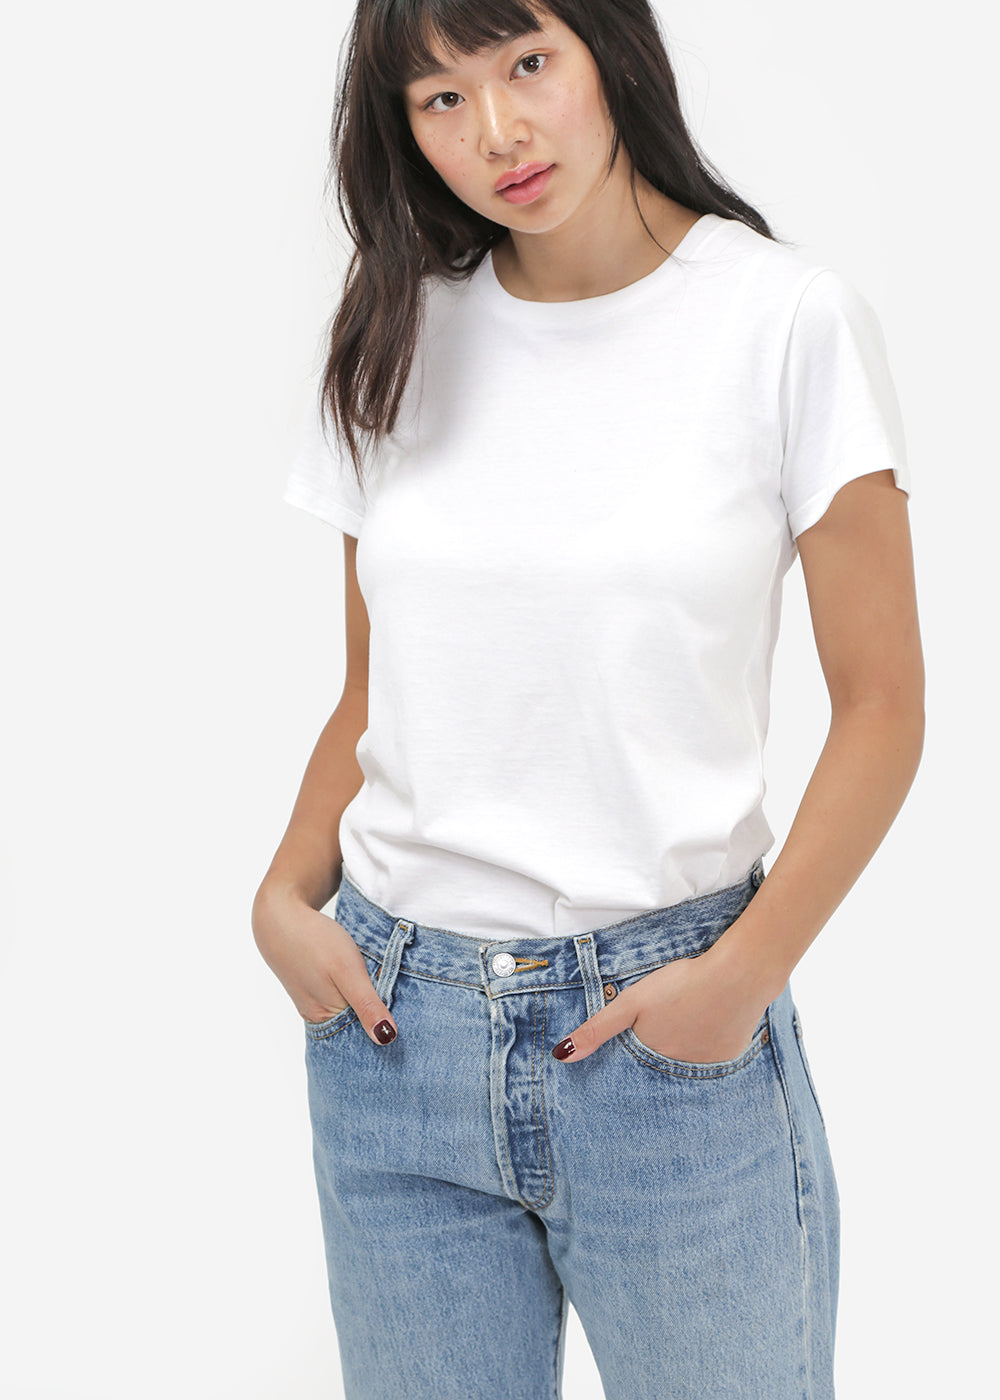 Baserange Off-White Cotton Tee Shirt — Shop sustainable fashion and slow fashion at New Classics Studios